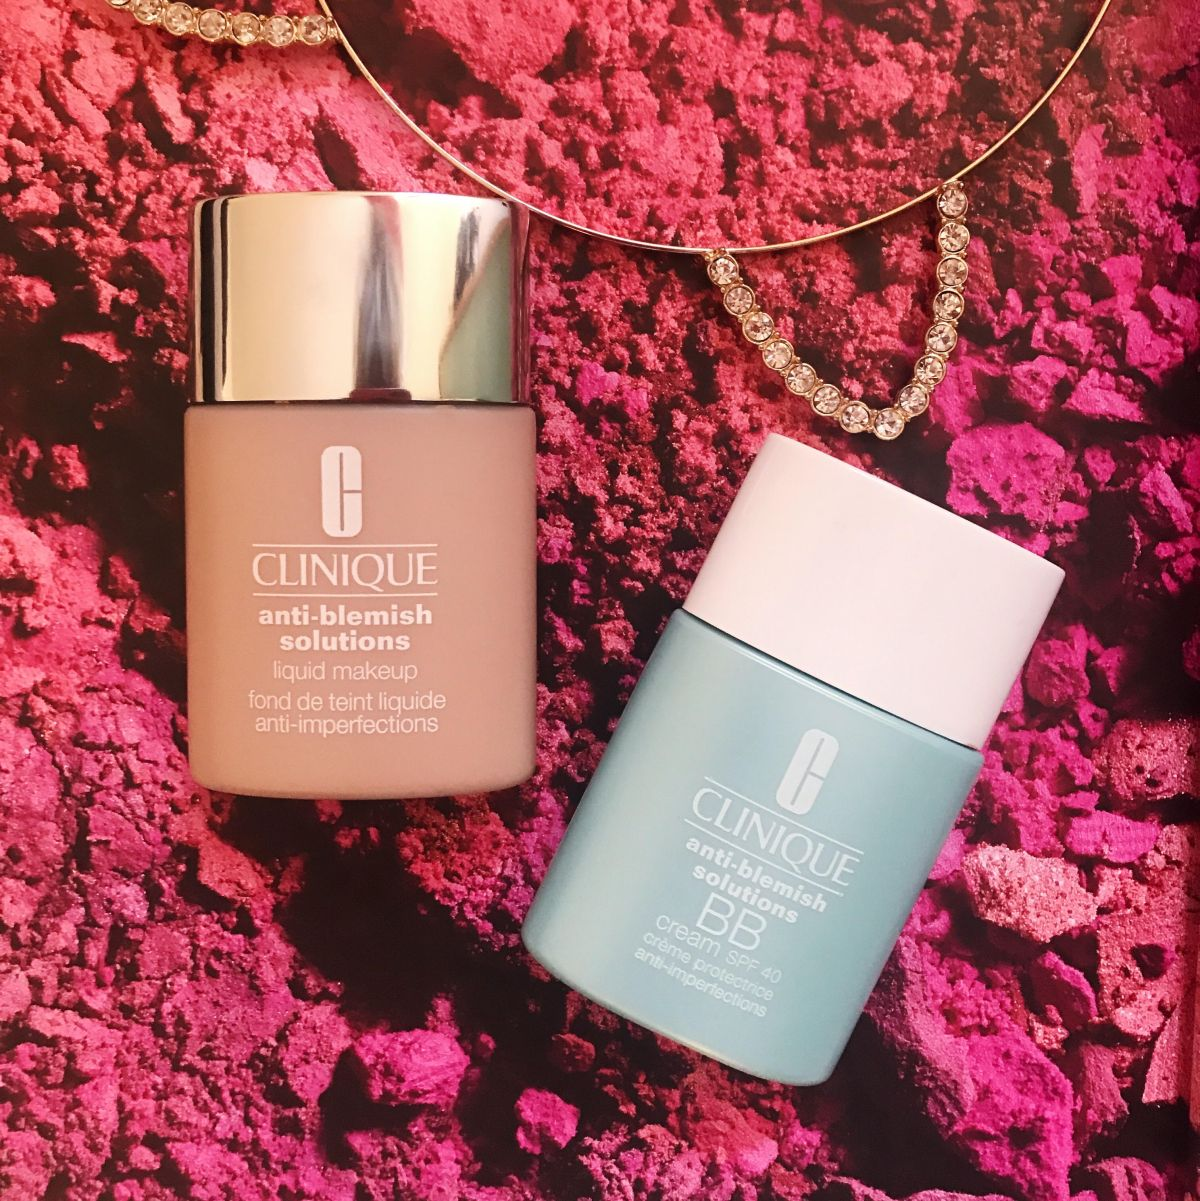 Recenzija: Clinique Anti-Blemish Solutions Liquid Makeup vs Clinique Anti-Blemish Solutions BB Cream